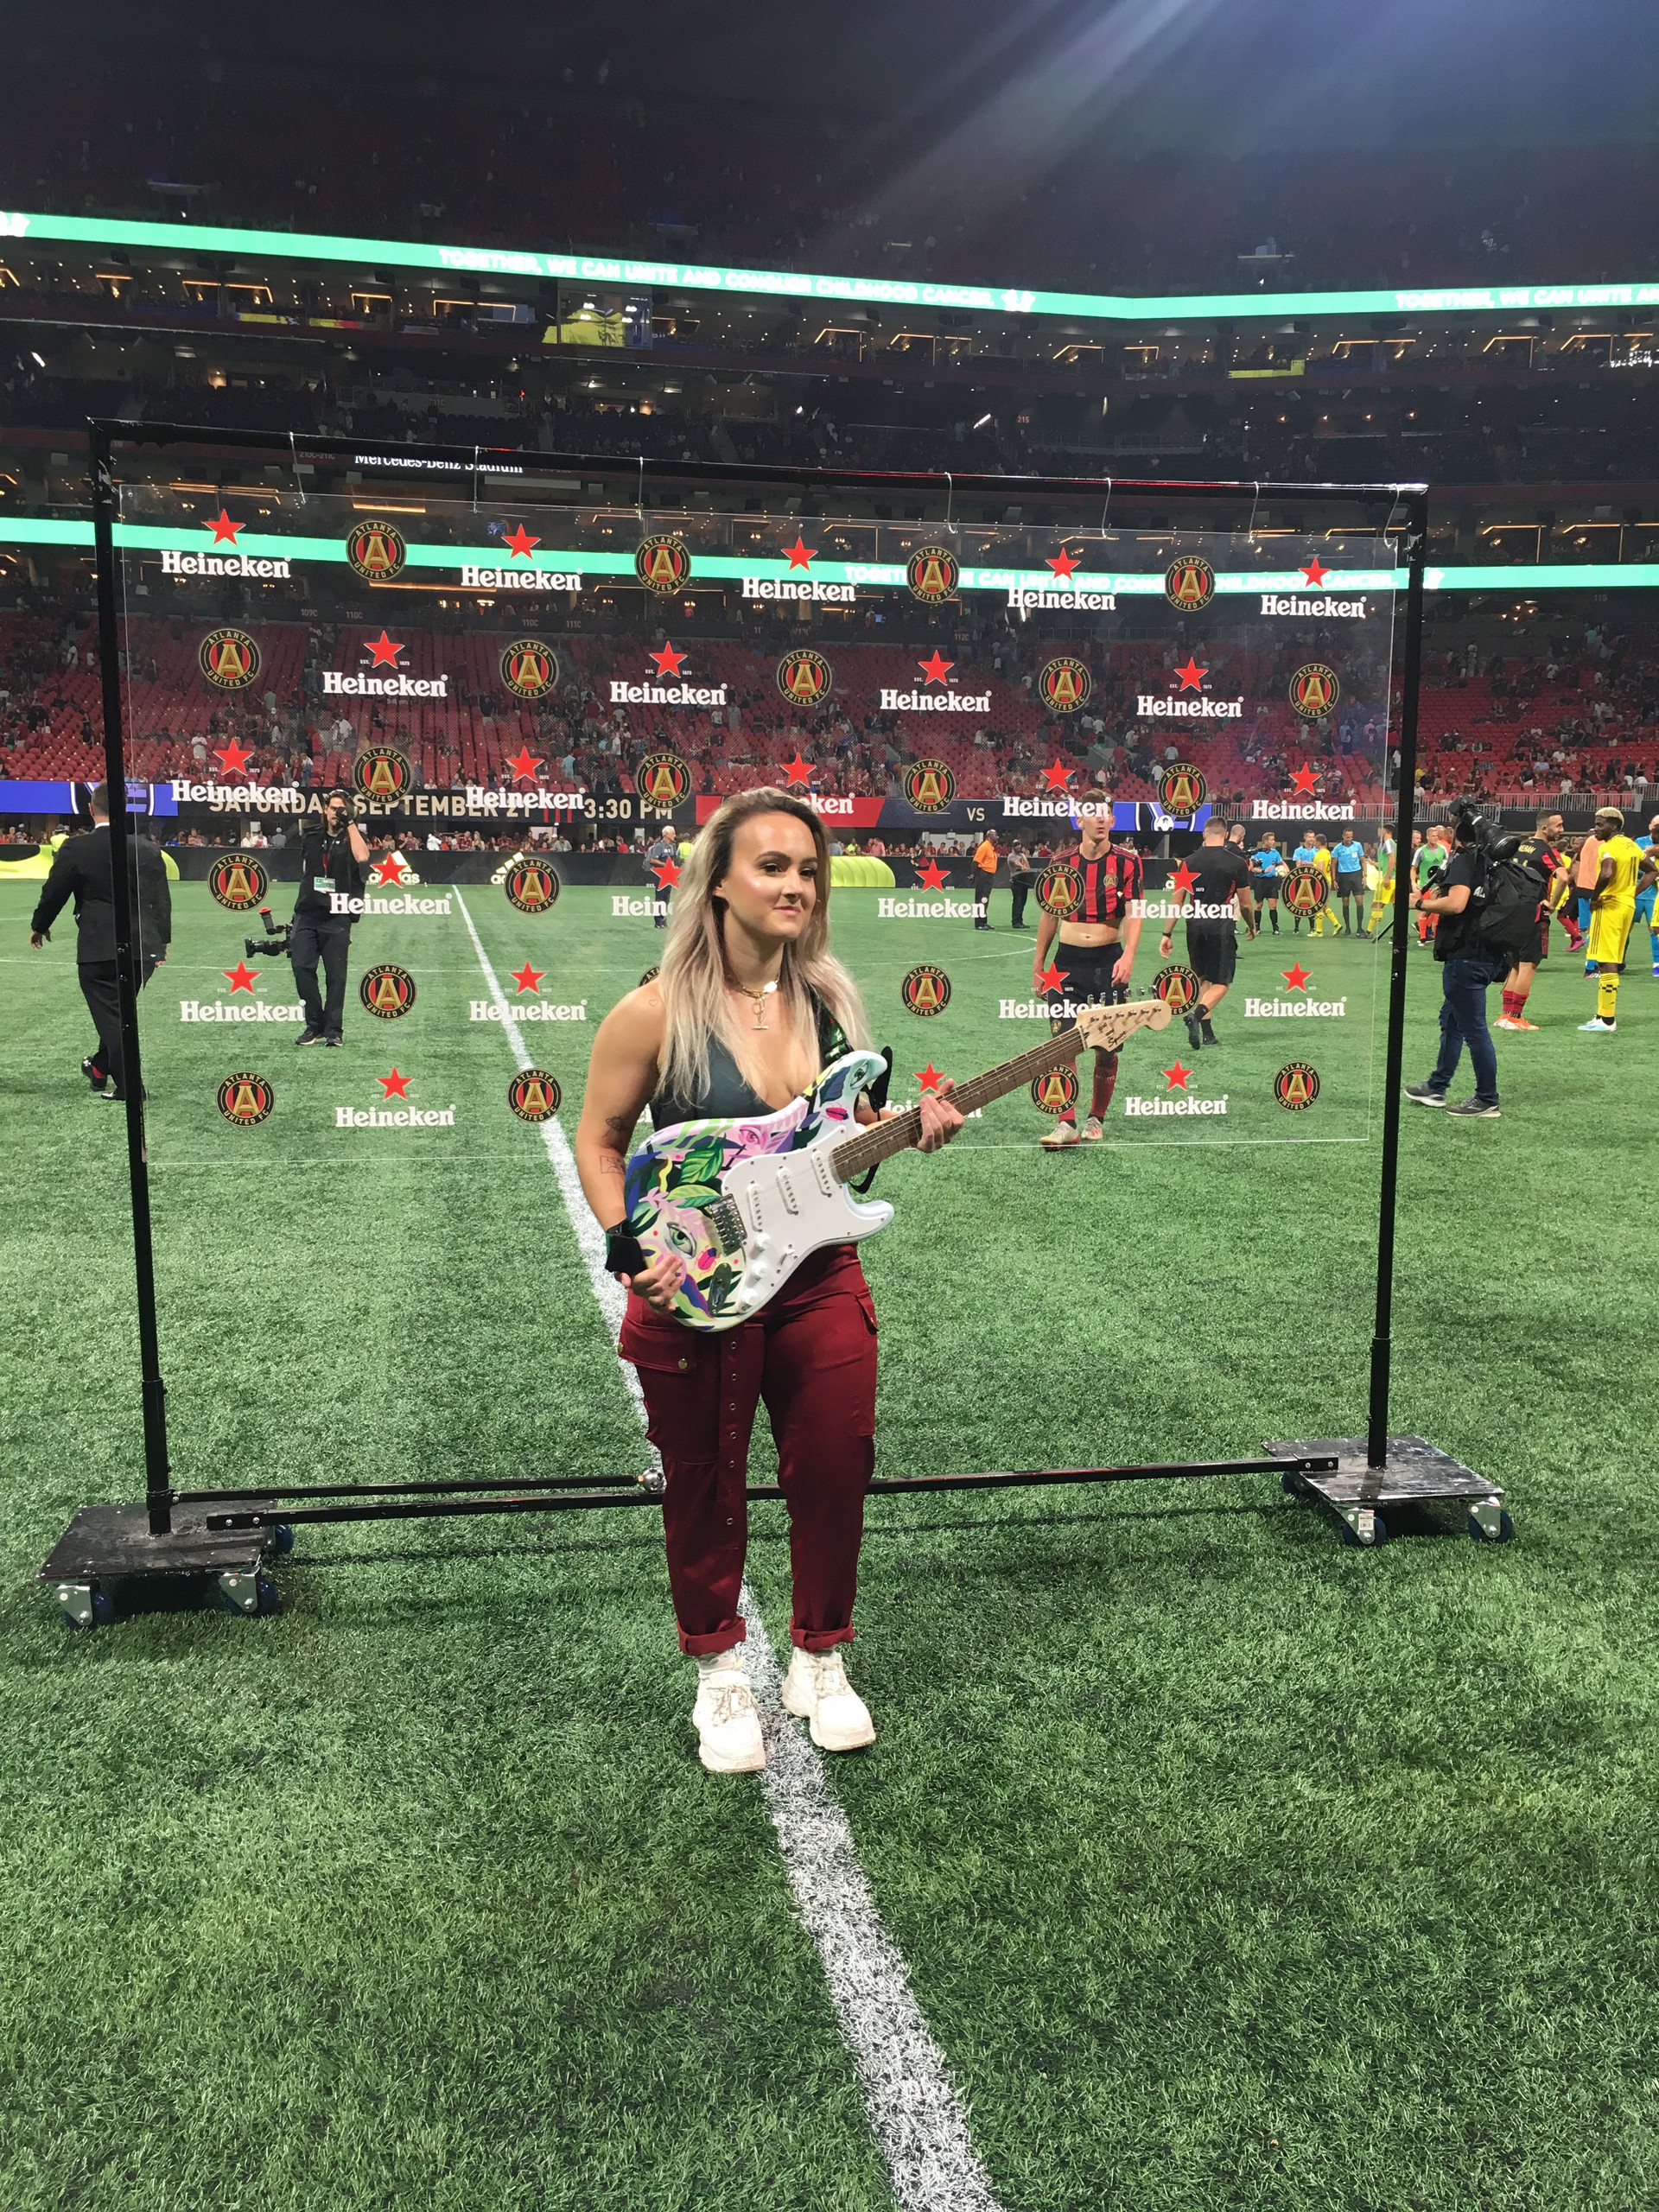 cathryn bozone at atlanta united game delivering man of the match guitar